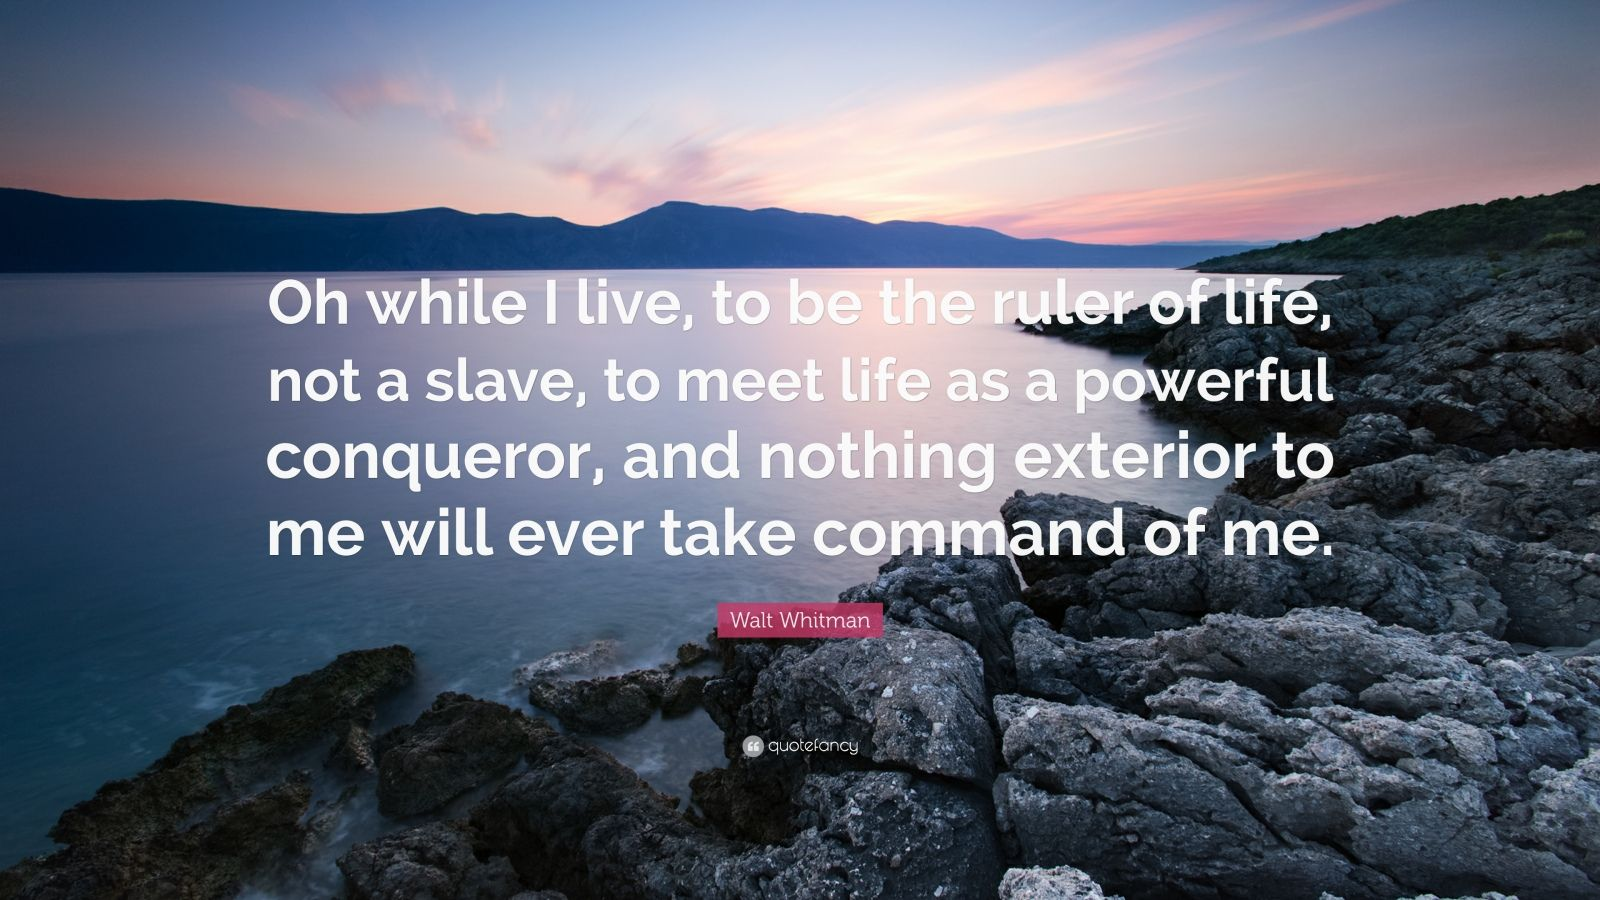 """Walt Whitman Quote: """"Oh while I live, to be the ruler of life, not a slave, to meet life as a powerful conqueror, and nothing exterior to me will ever take command of me."""""""